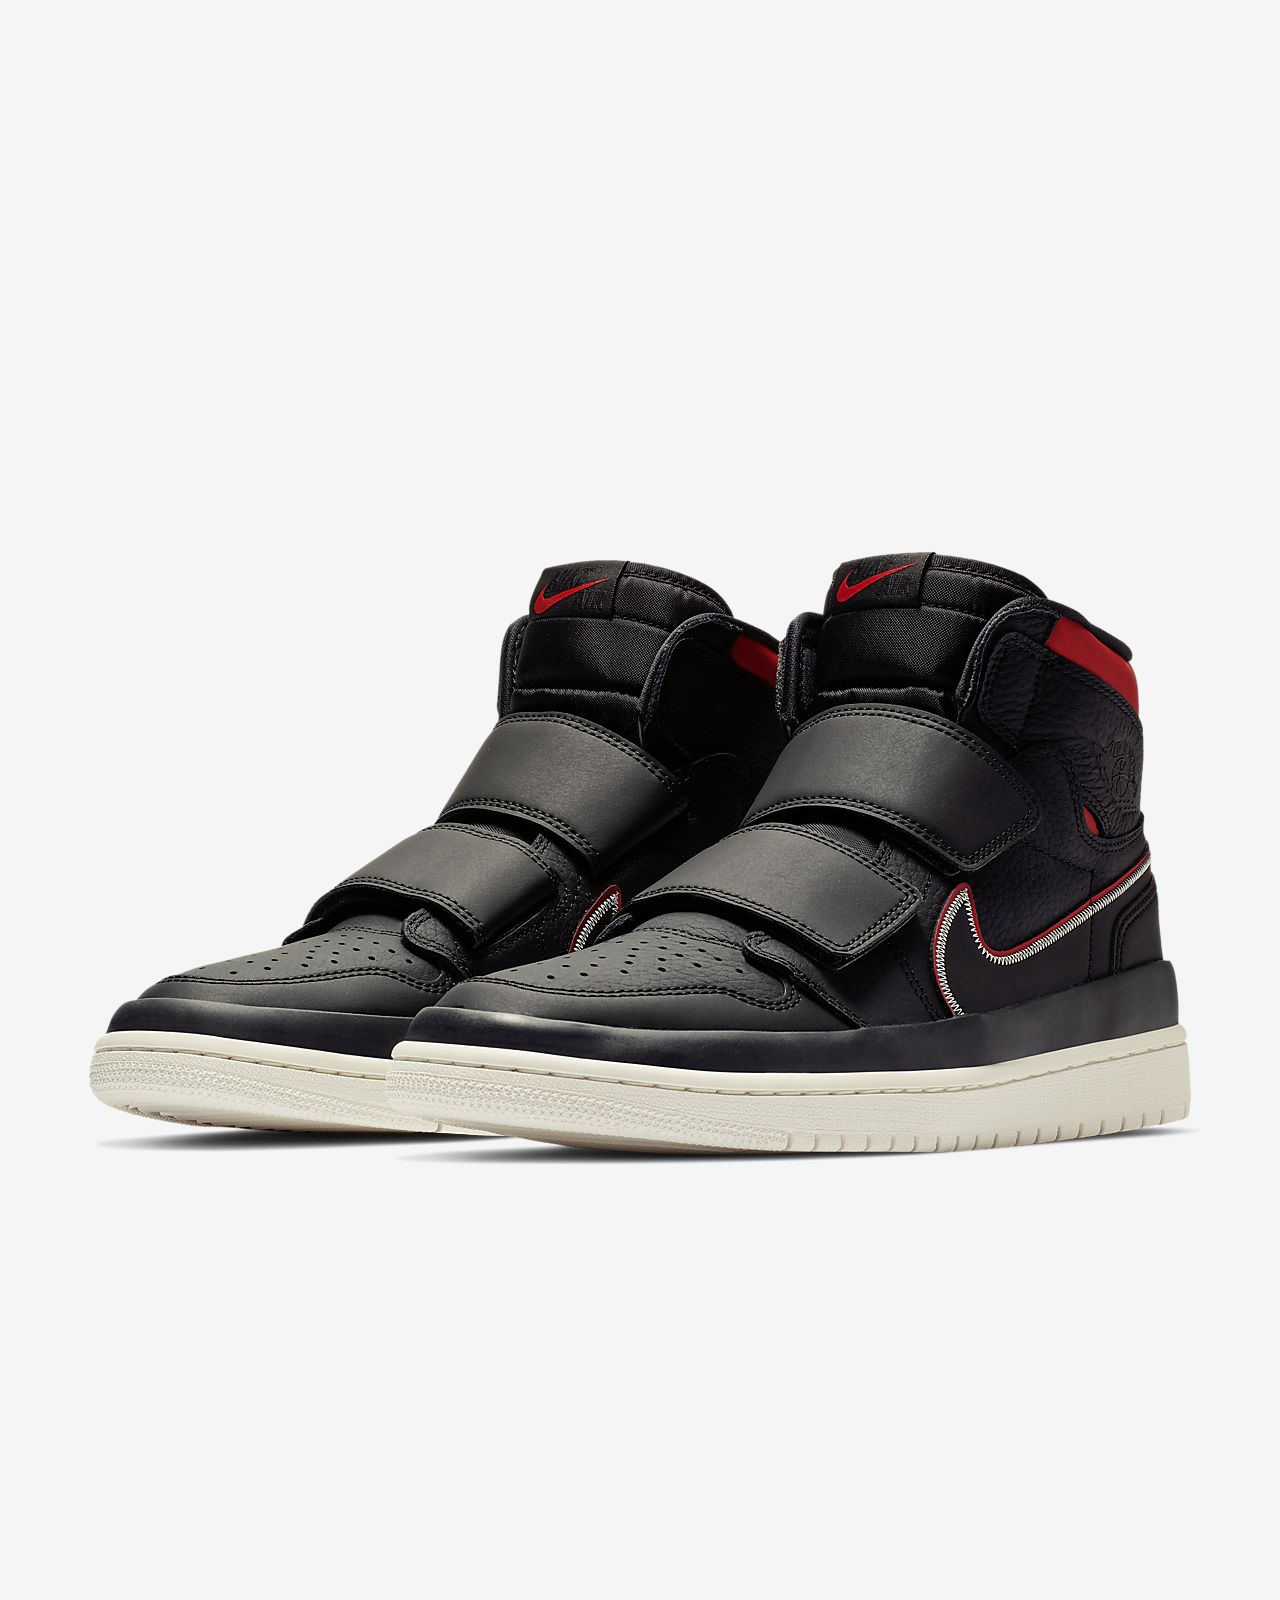 2f758011b8c7 Air Jordan 1 Retro High Double Strap Men s Shoe. Nike.com